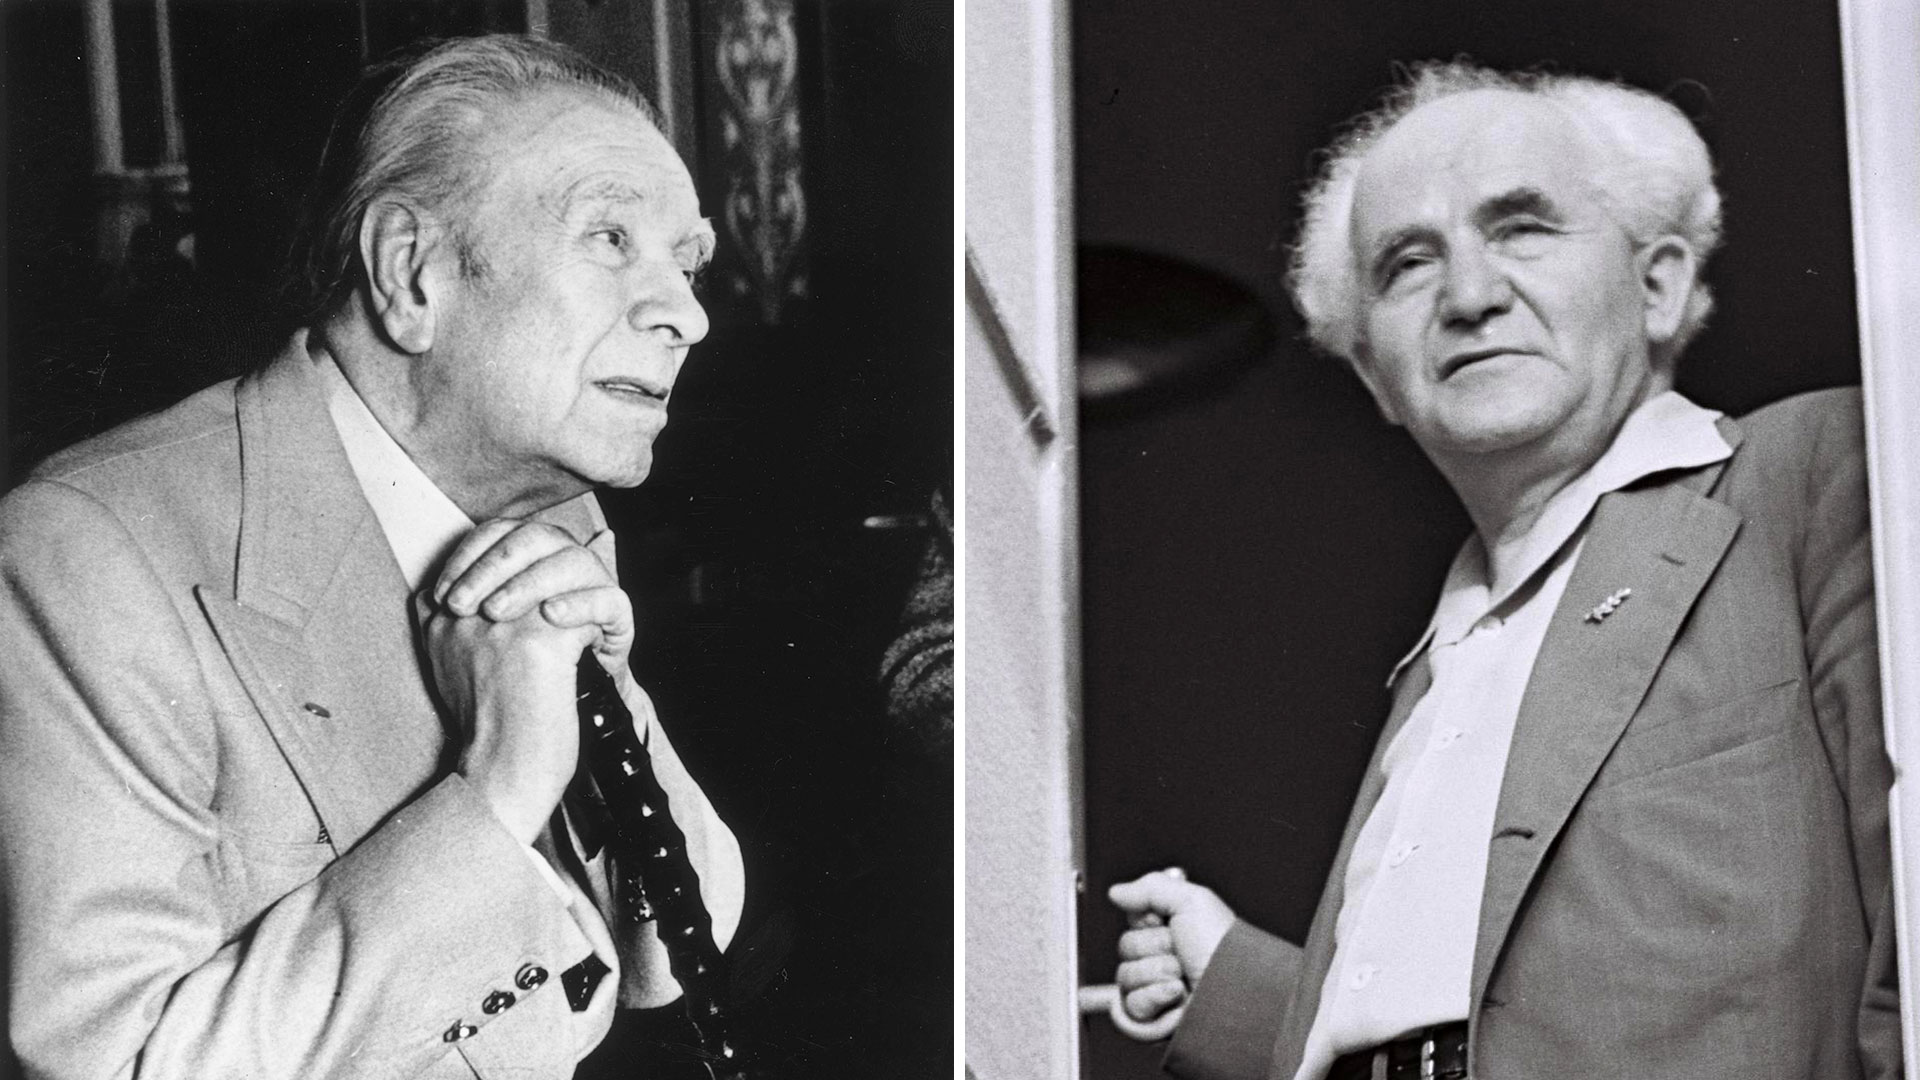 Borges and Ben-Gurion